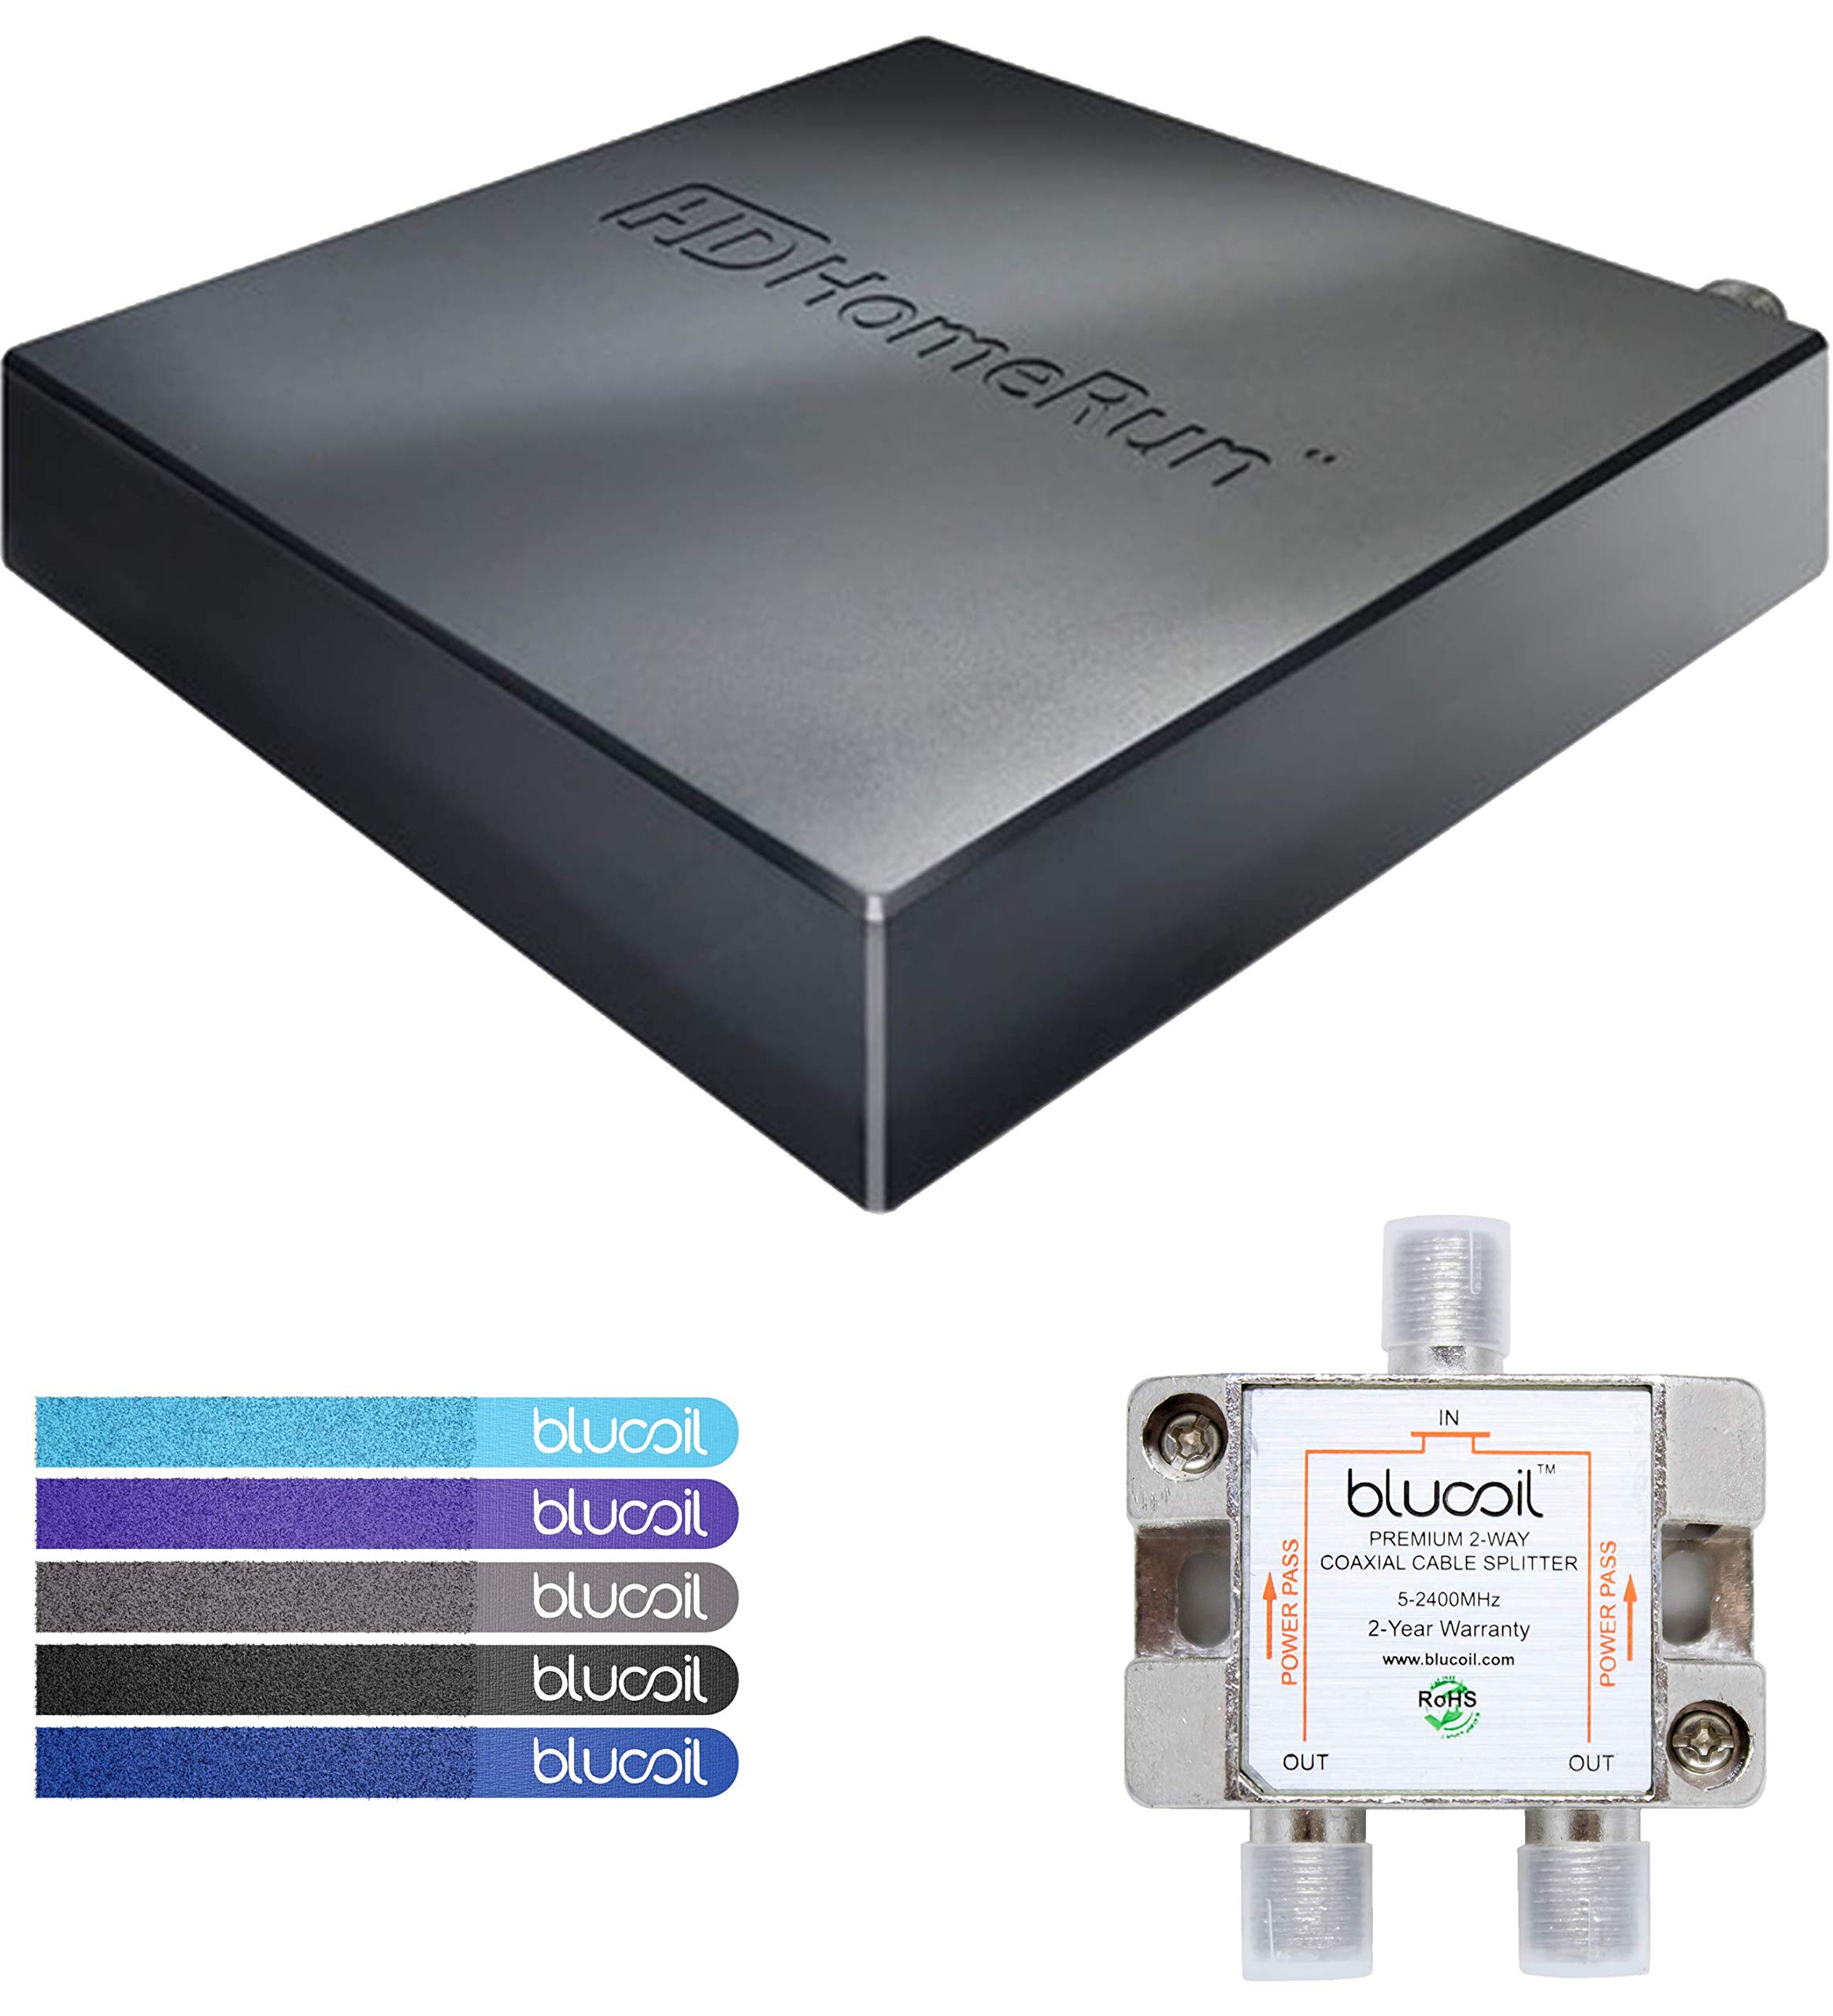 SiliconDust HDHR5-4US HDHomeRun Connect Quatro Tuner (Renewed) Bundle with Blucoil 2-Way TV Coaxial Cable Splitter and 5-Pack of Reusable Cable Ties by Blucoil